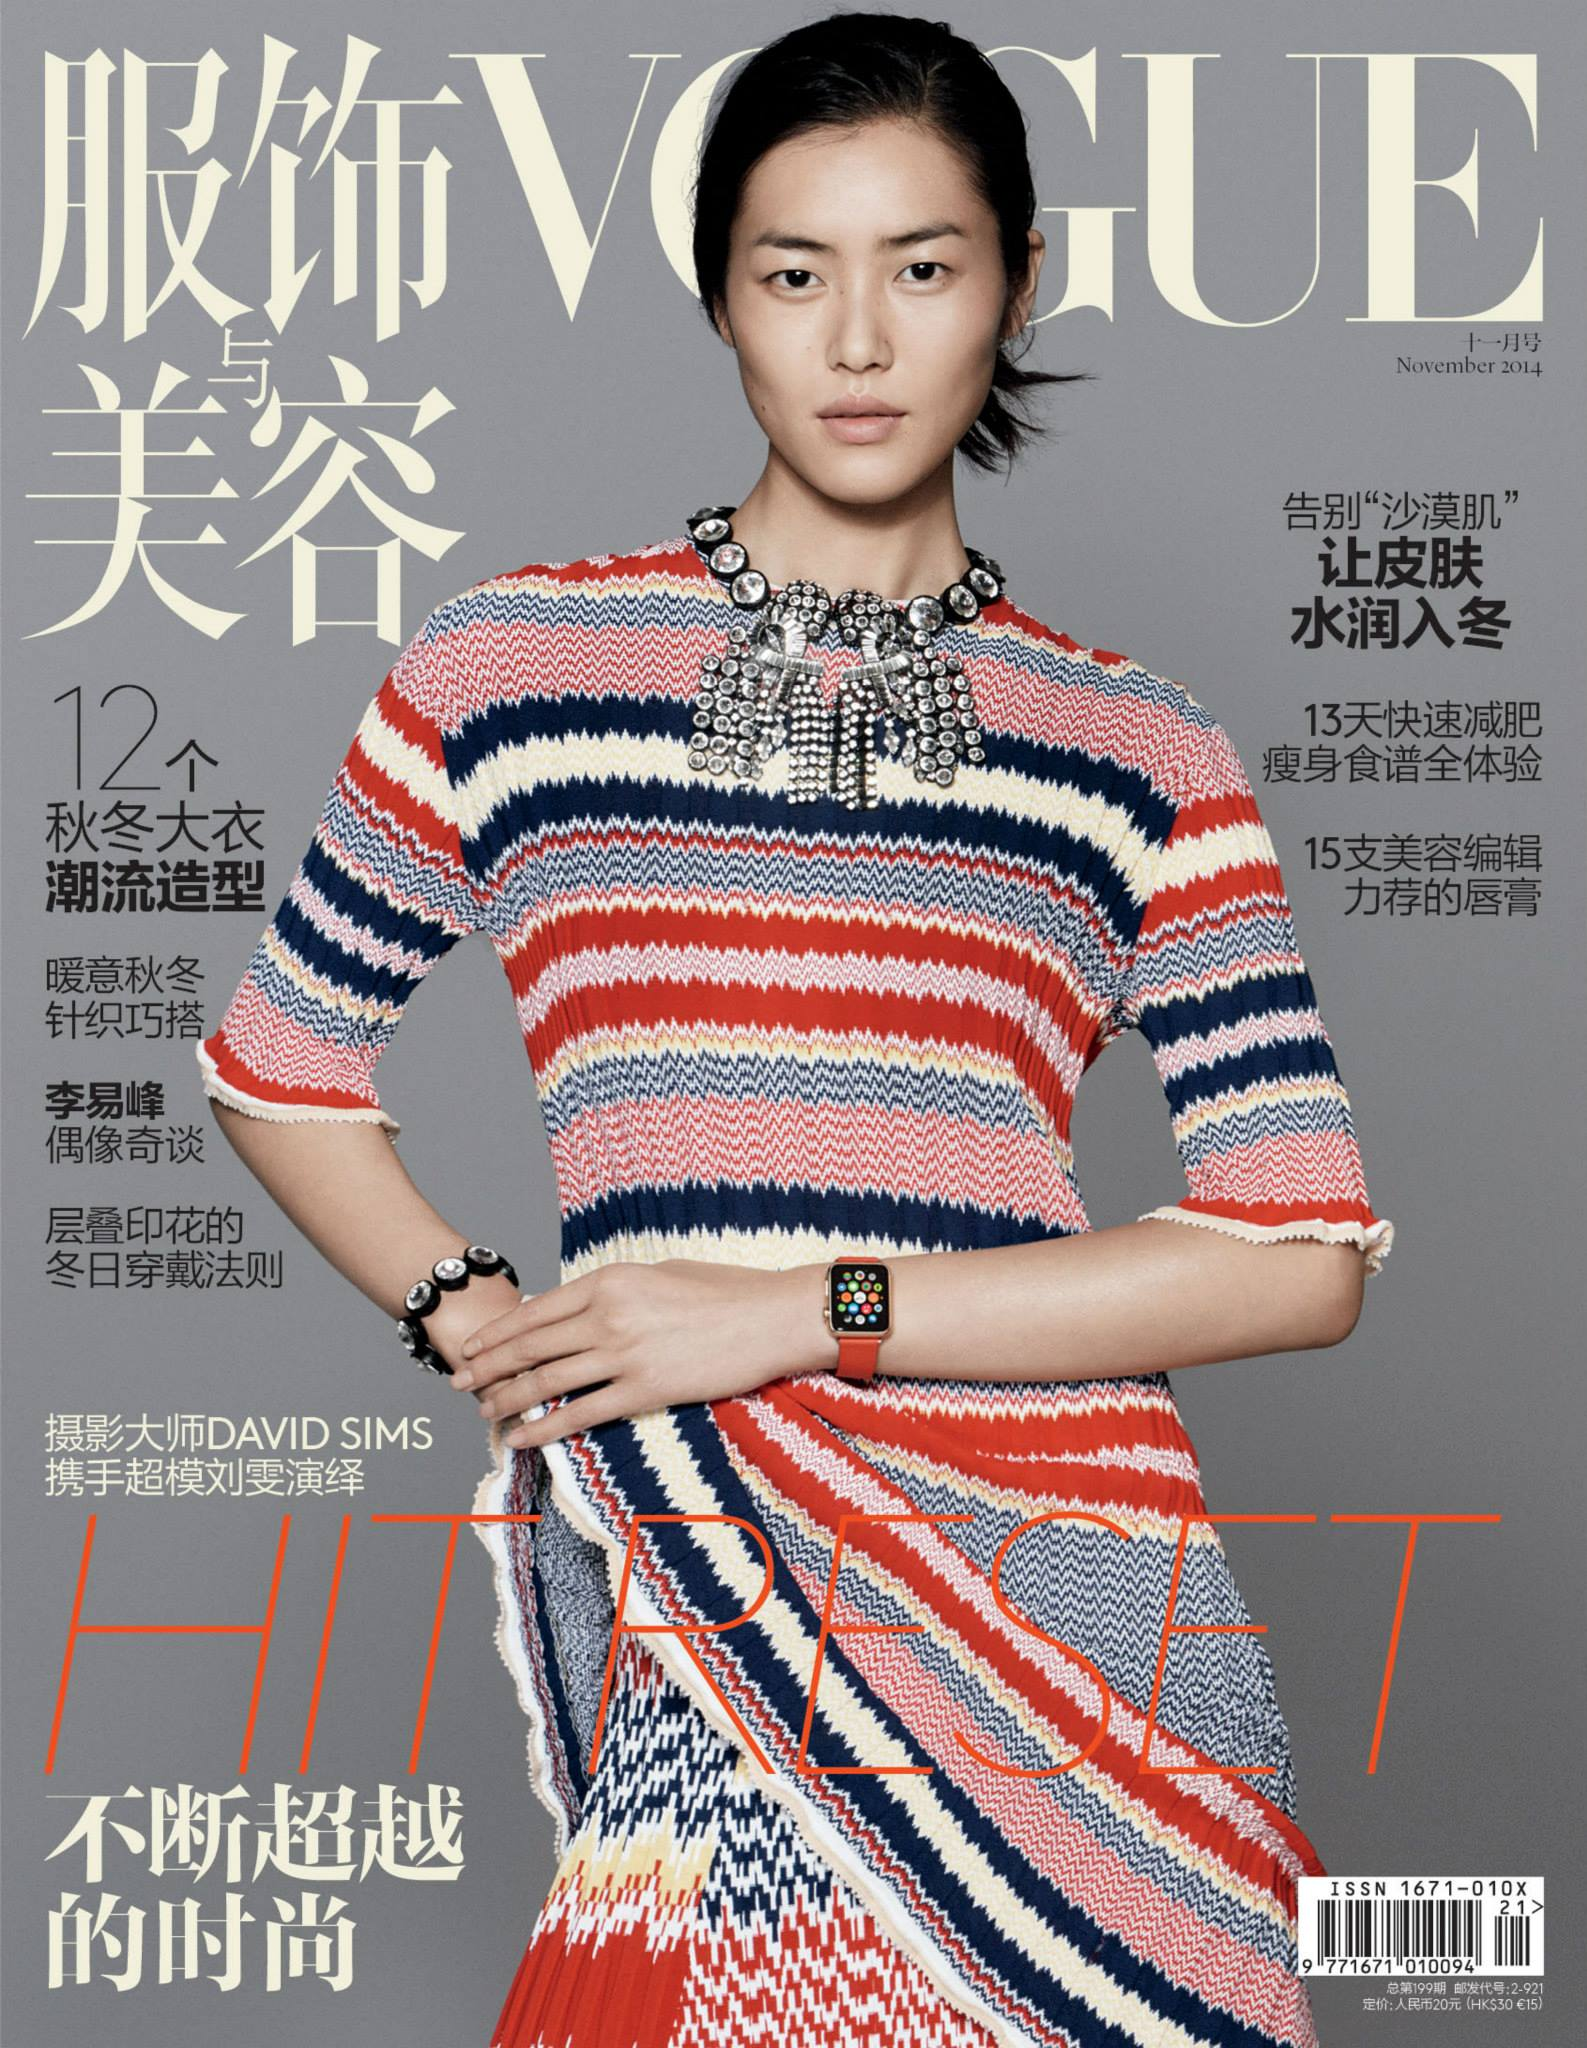 Vogue-China-Cover-Novemeber-2014